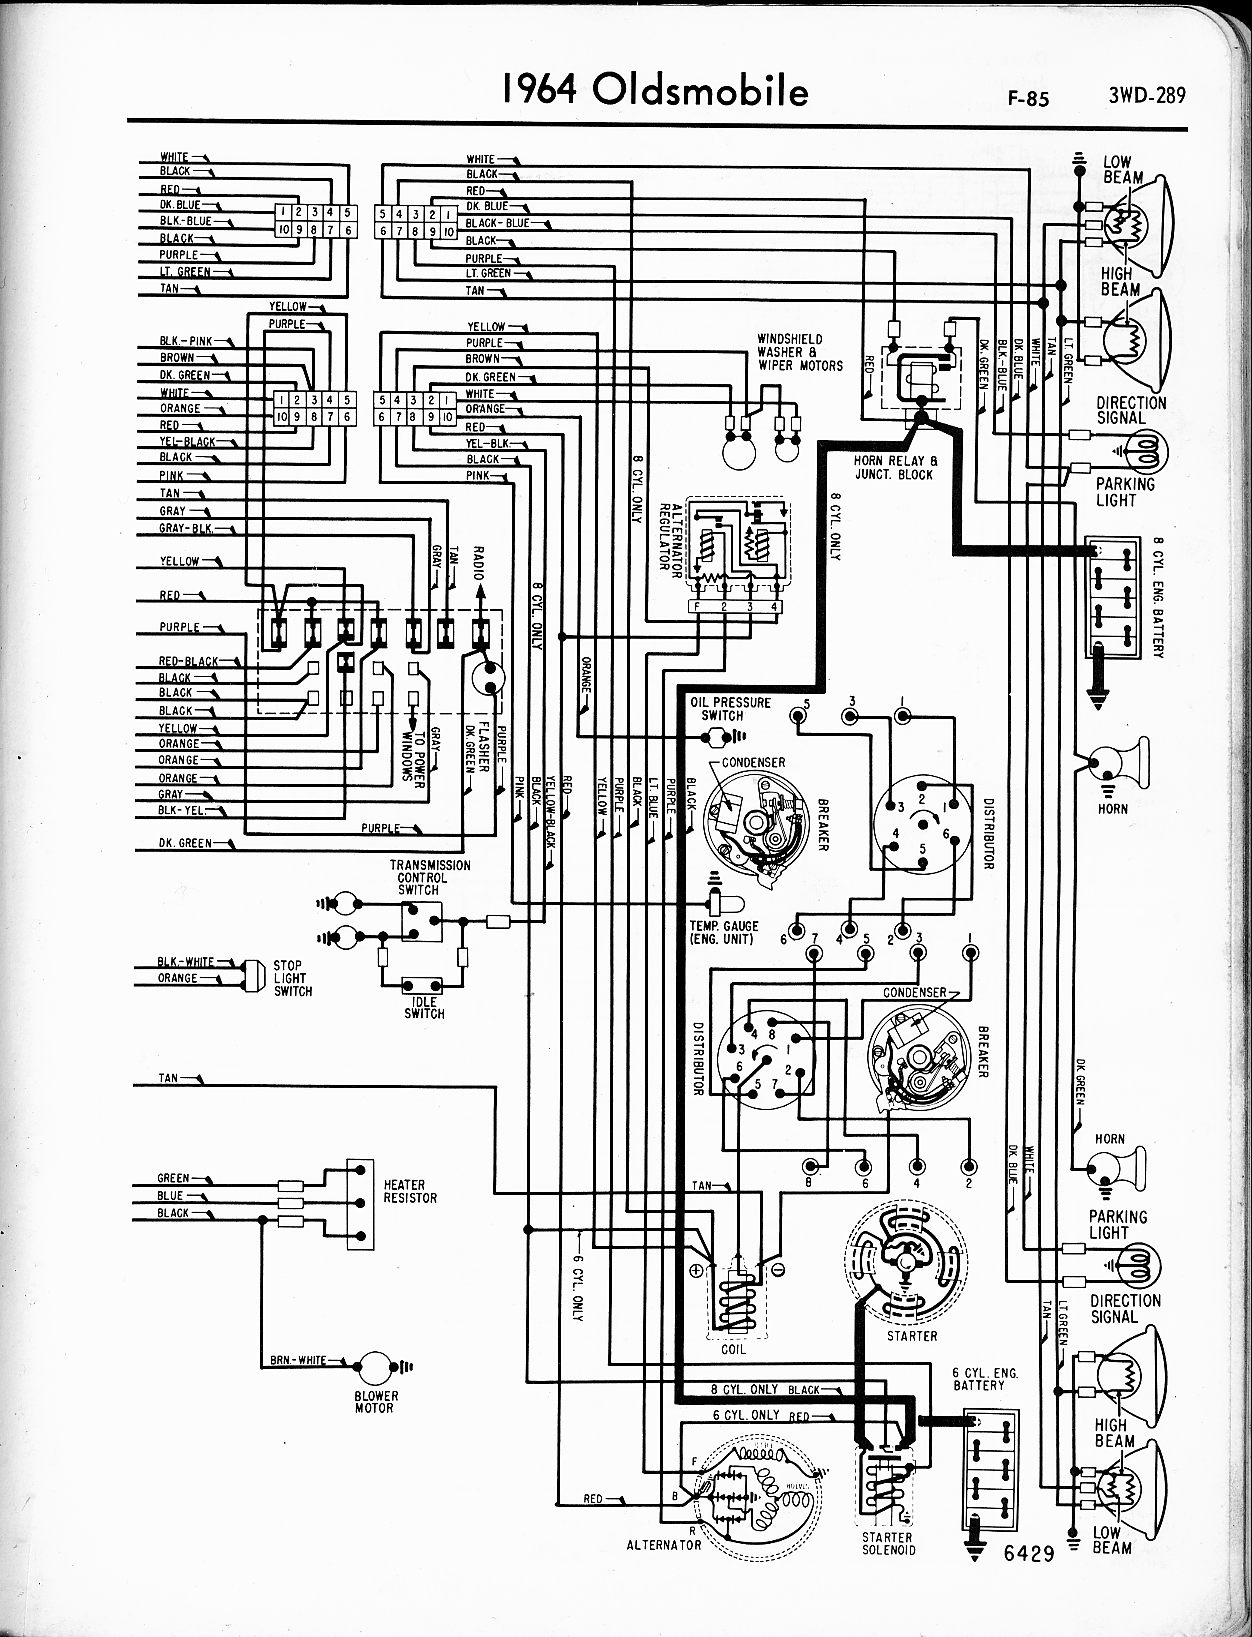 Wiring Diagram 1988 Oldsmobile 88 Diagrams 1937 Ford Ignition Radio For Free 1999 Vat Silhouette